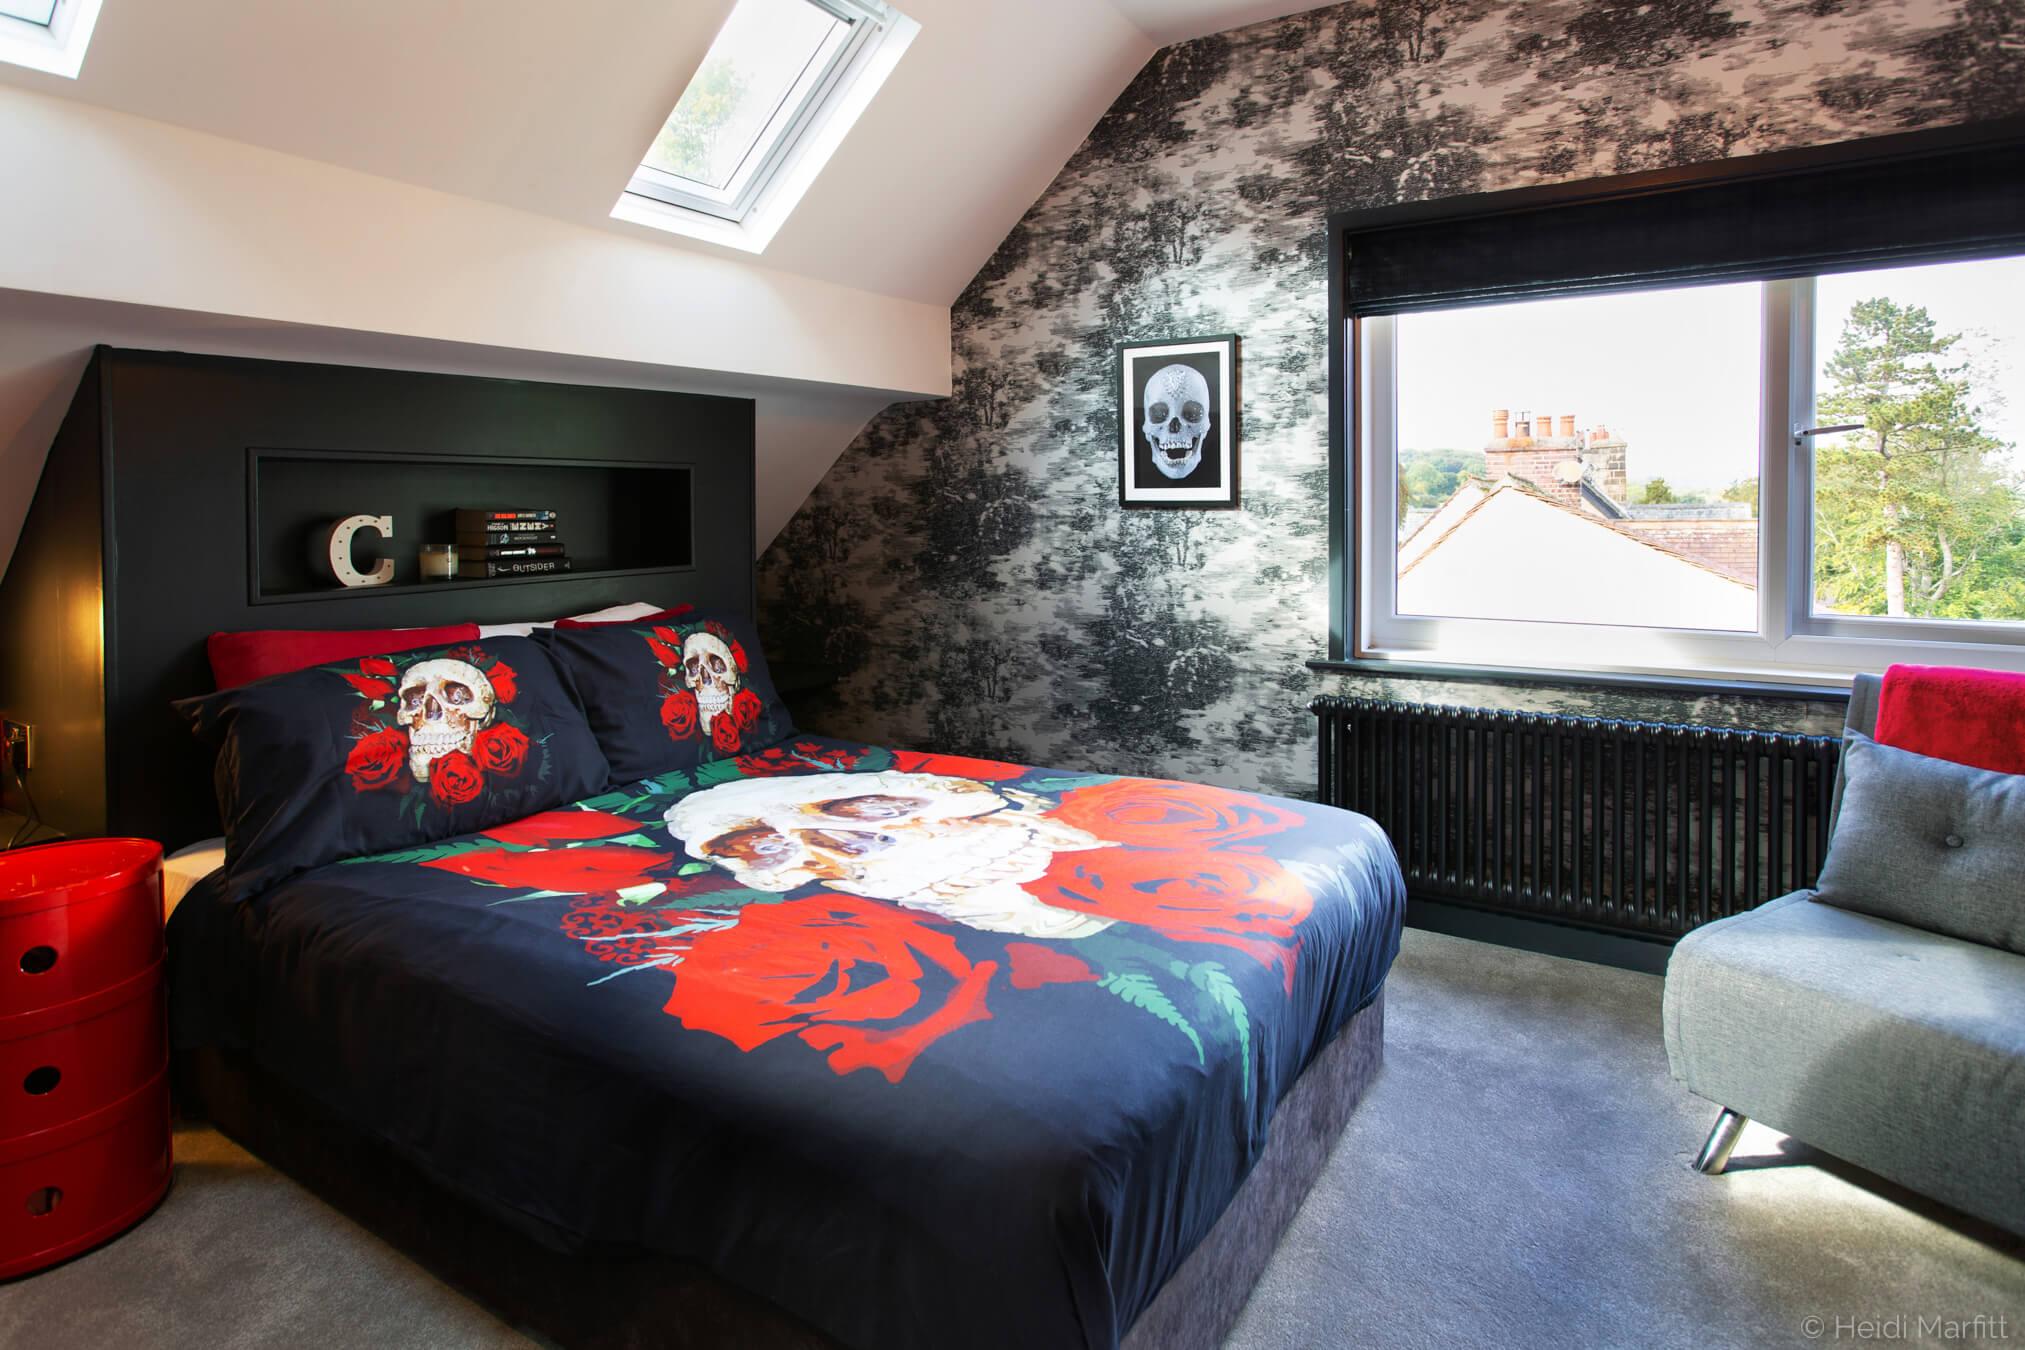 Inky greys and skull patterned accessories turned this attic bedroom into a gothic retreat